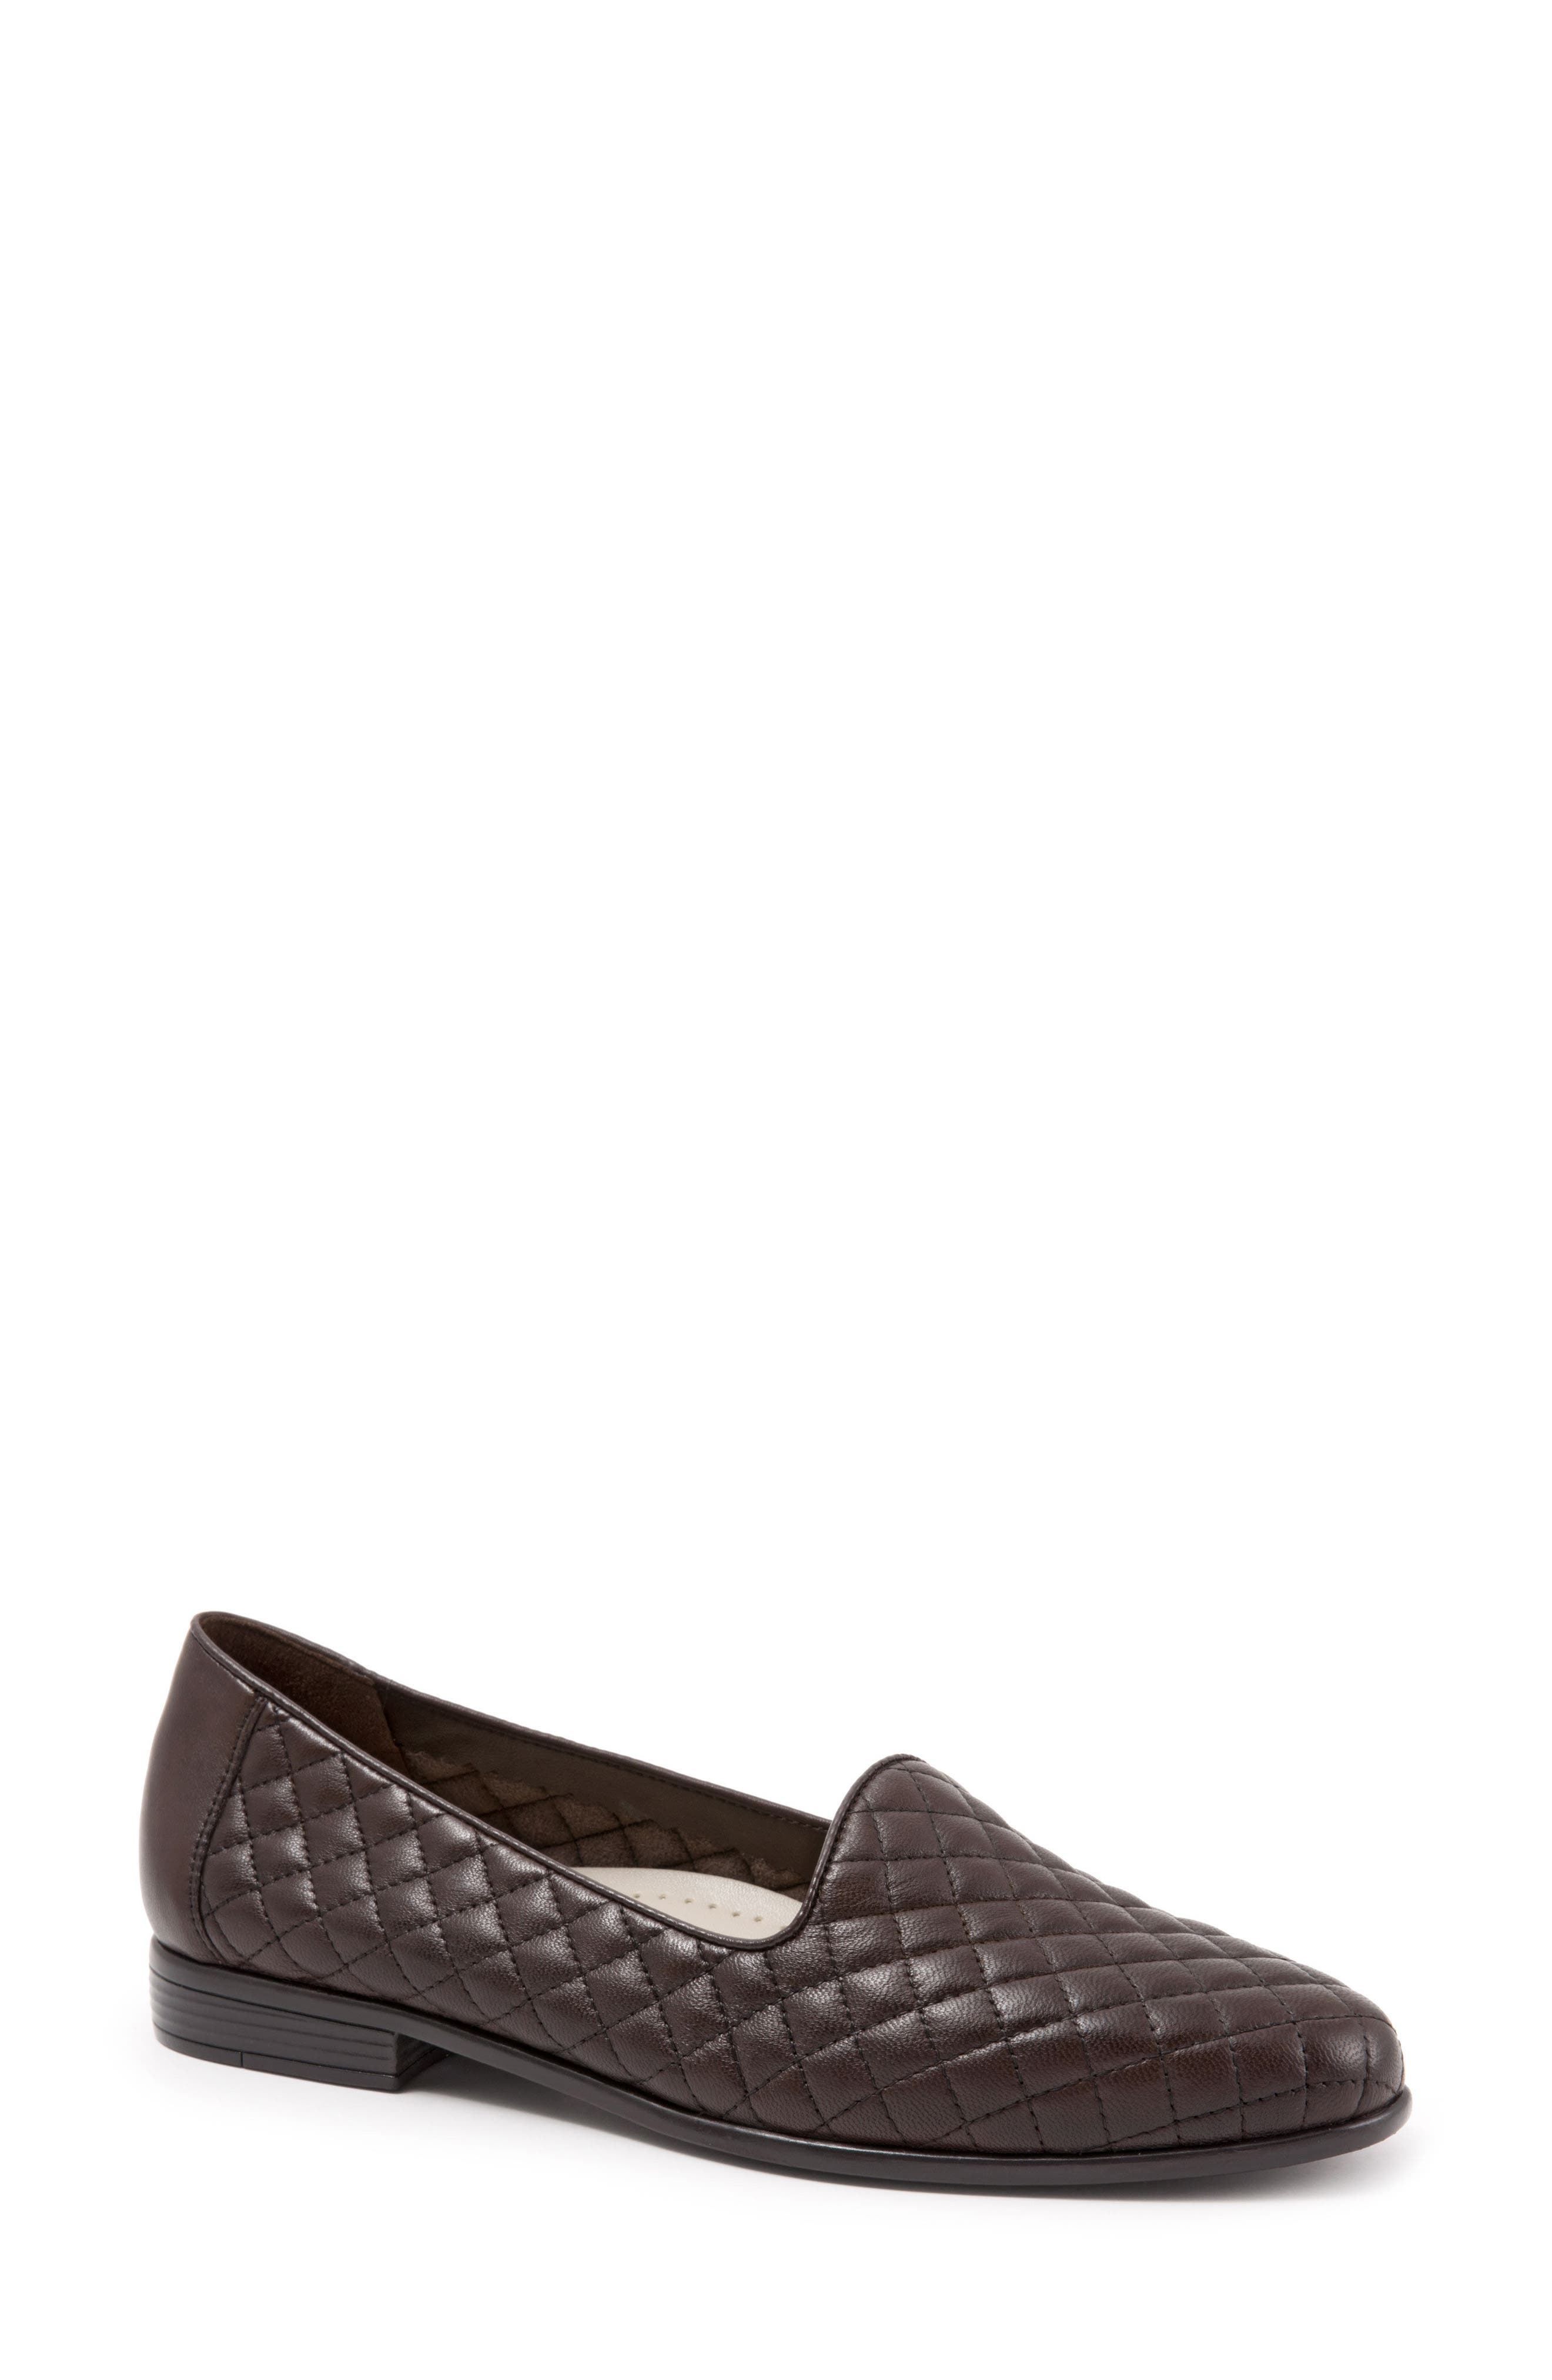 Liz Woven Loafer Flat,                             Main thumbnail 1, color,                             Dark Brown Leather